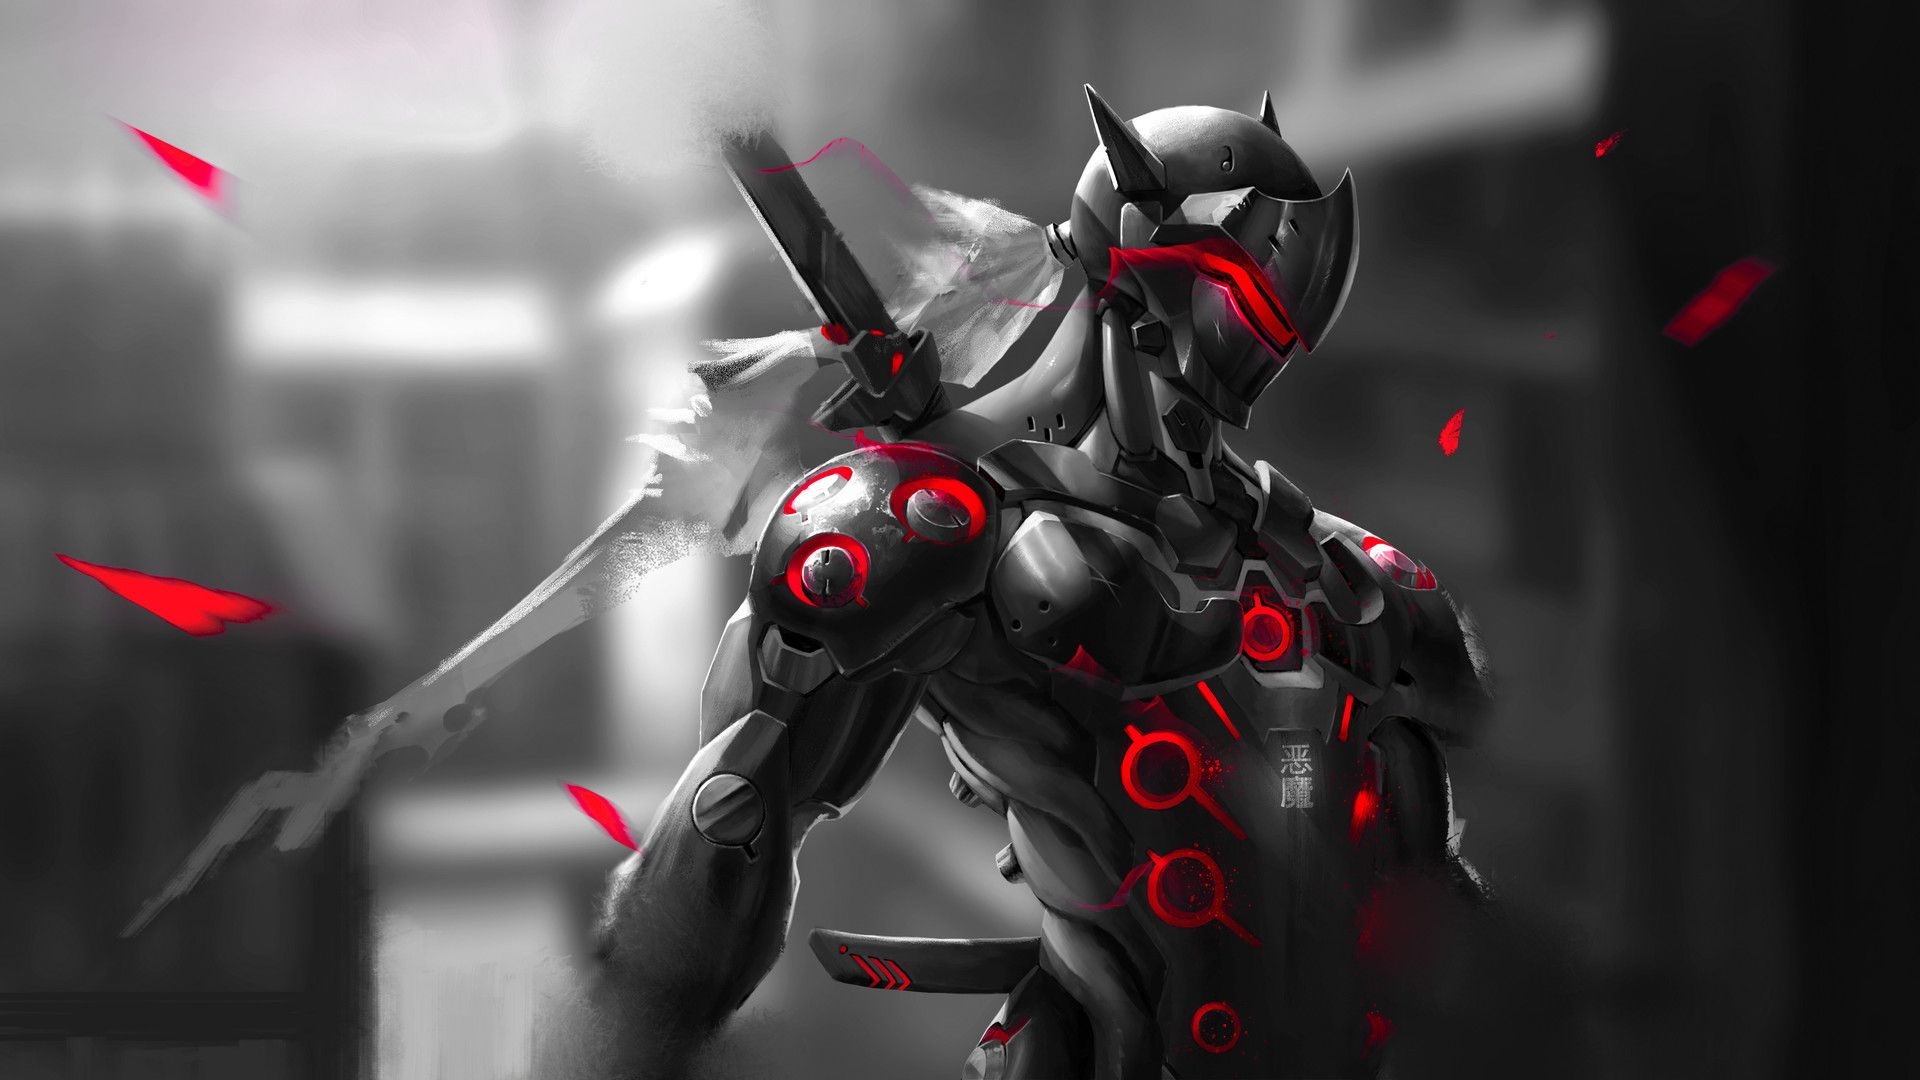 Red Genji Wallpaper 1080p Minionswallpaper Overwatch genji 1920x1080